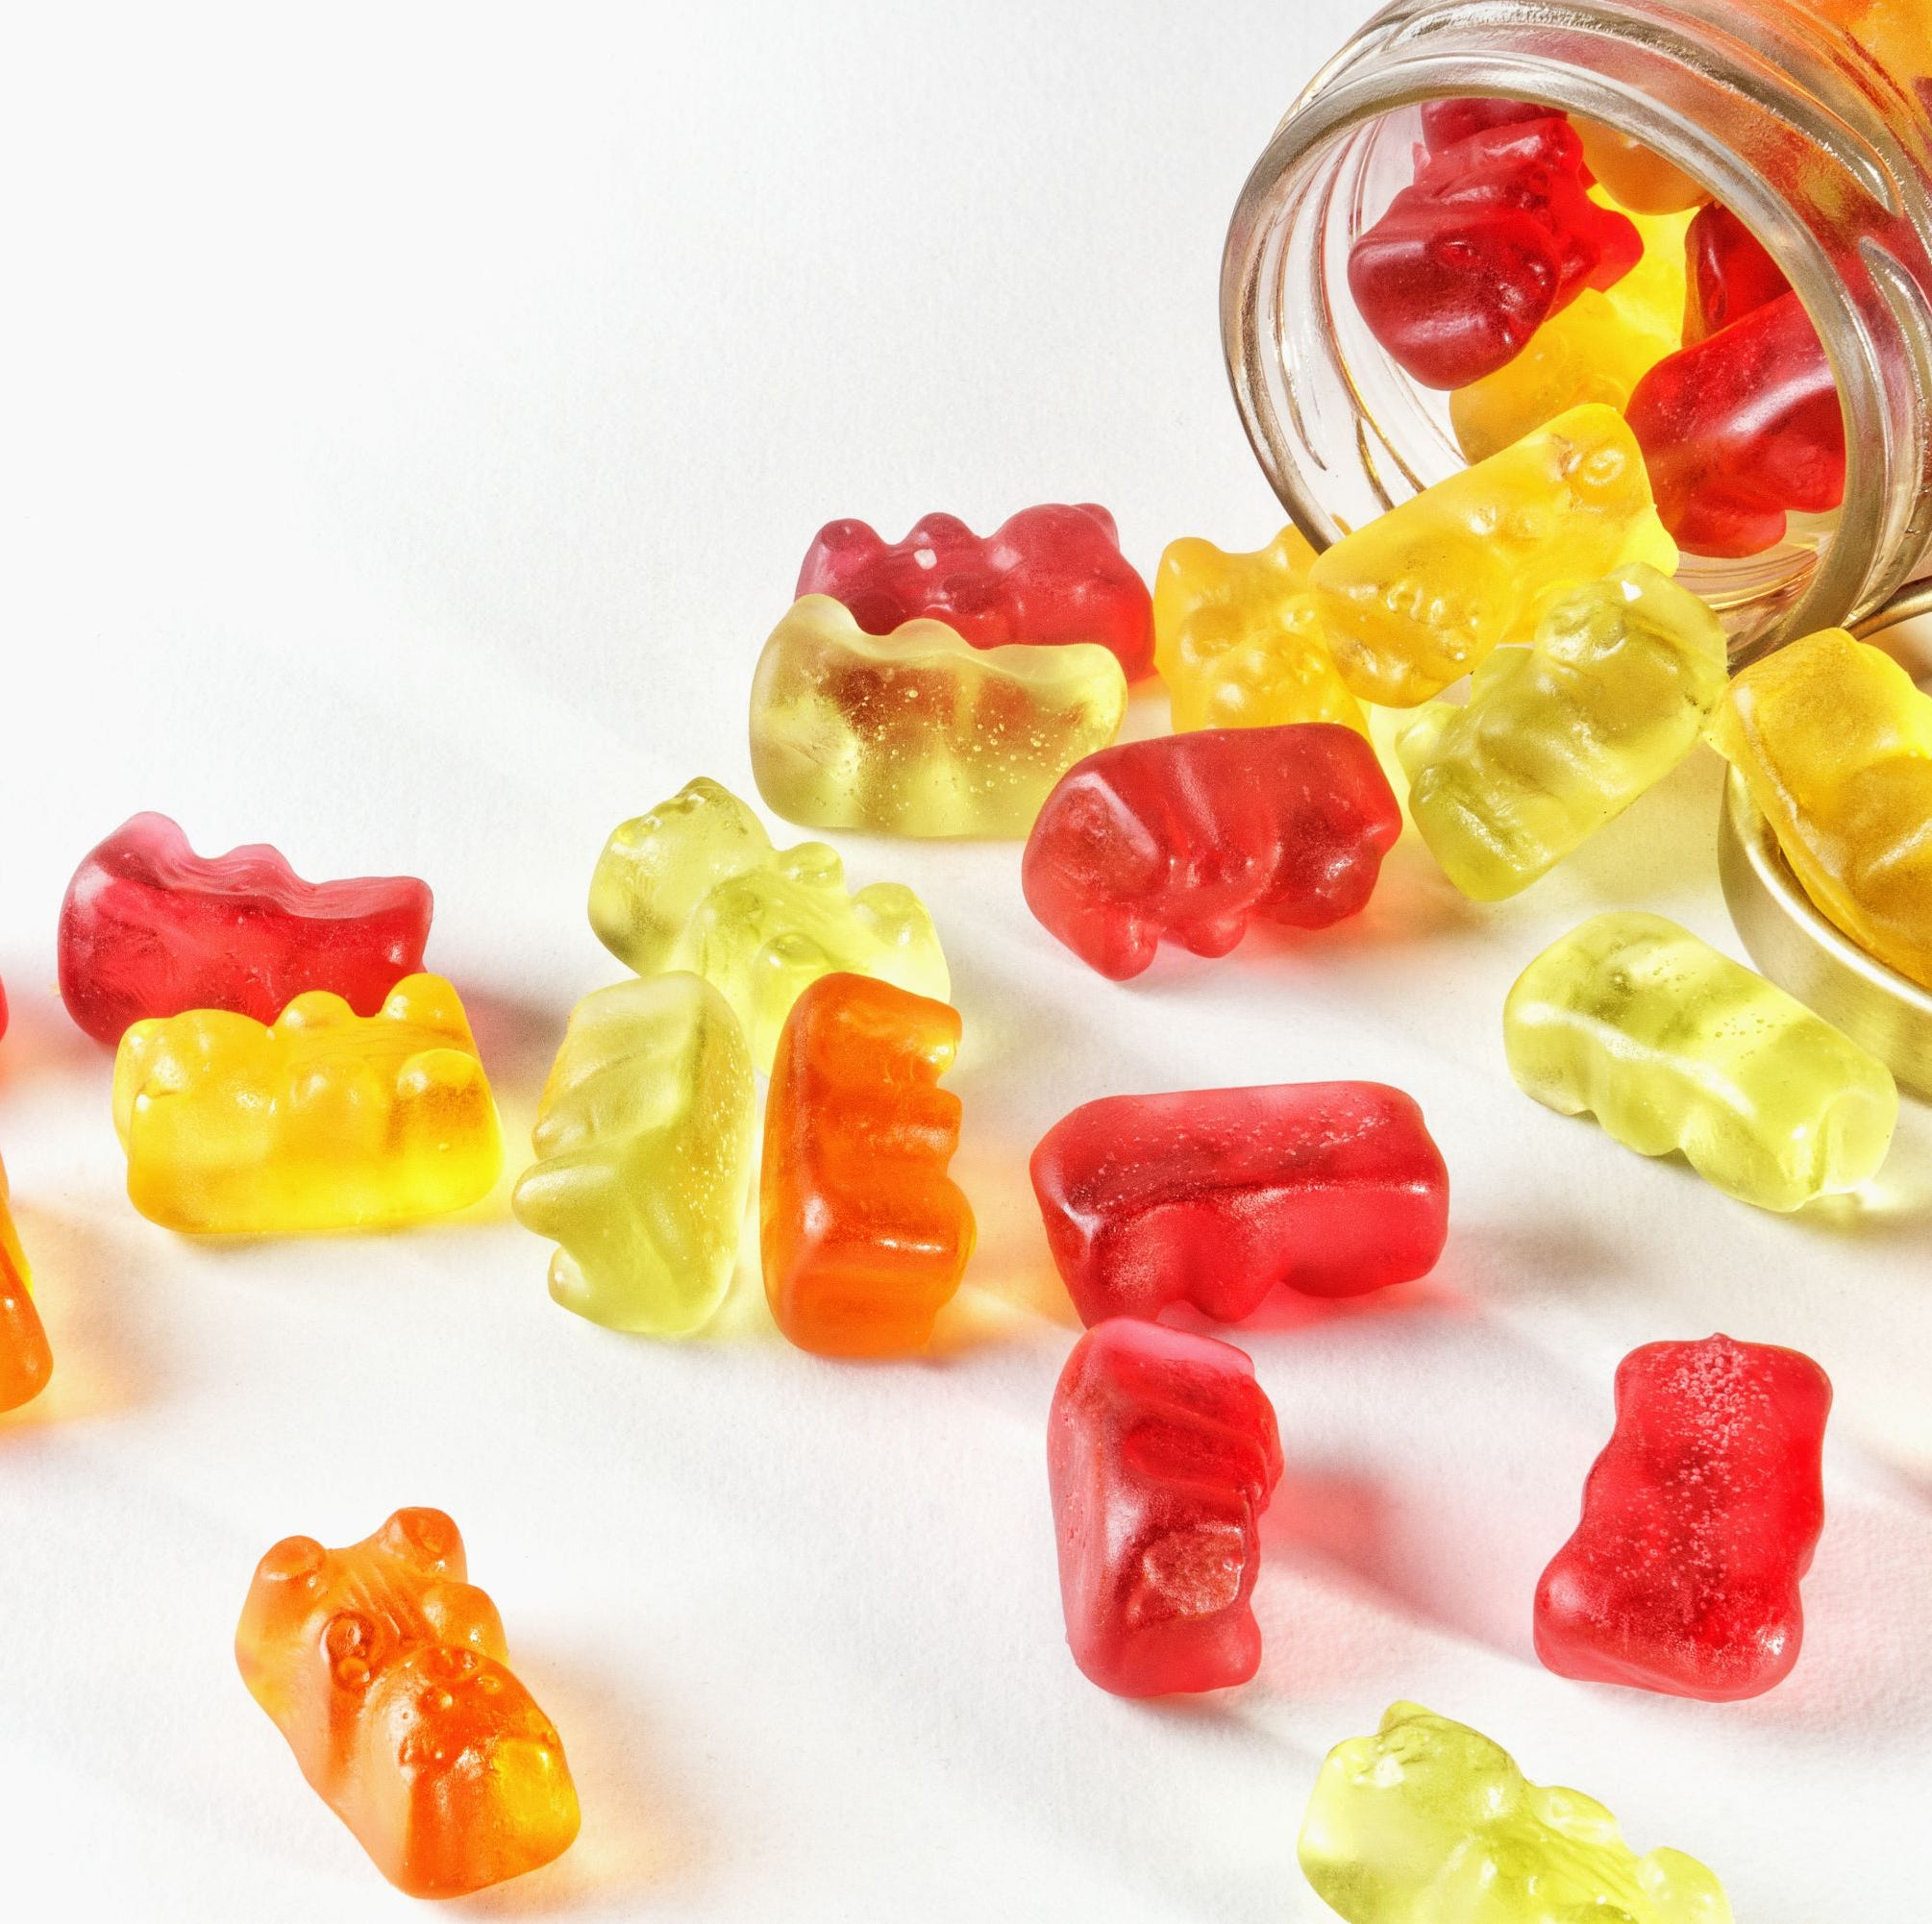 A Kansas mom says she found metal shavings in a bottle of her toddler's gummy vitamins.